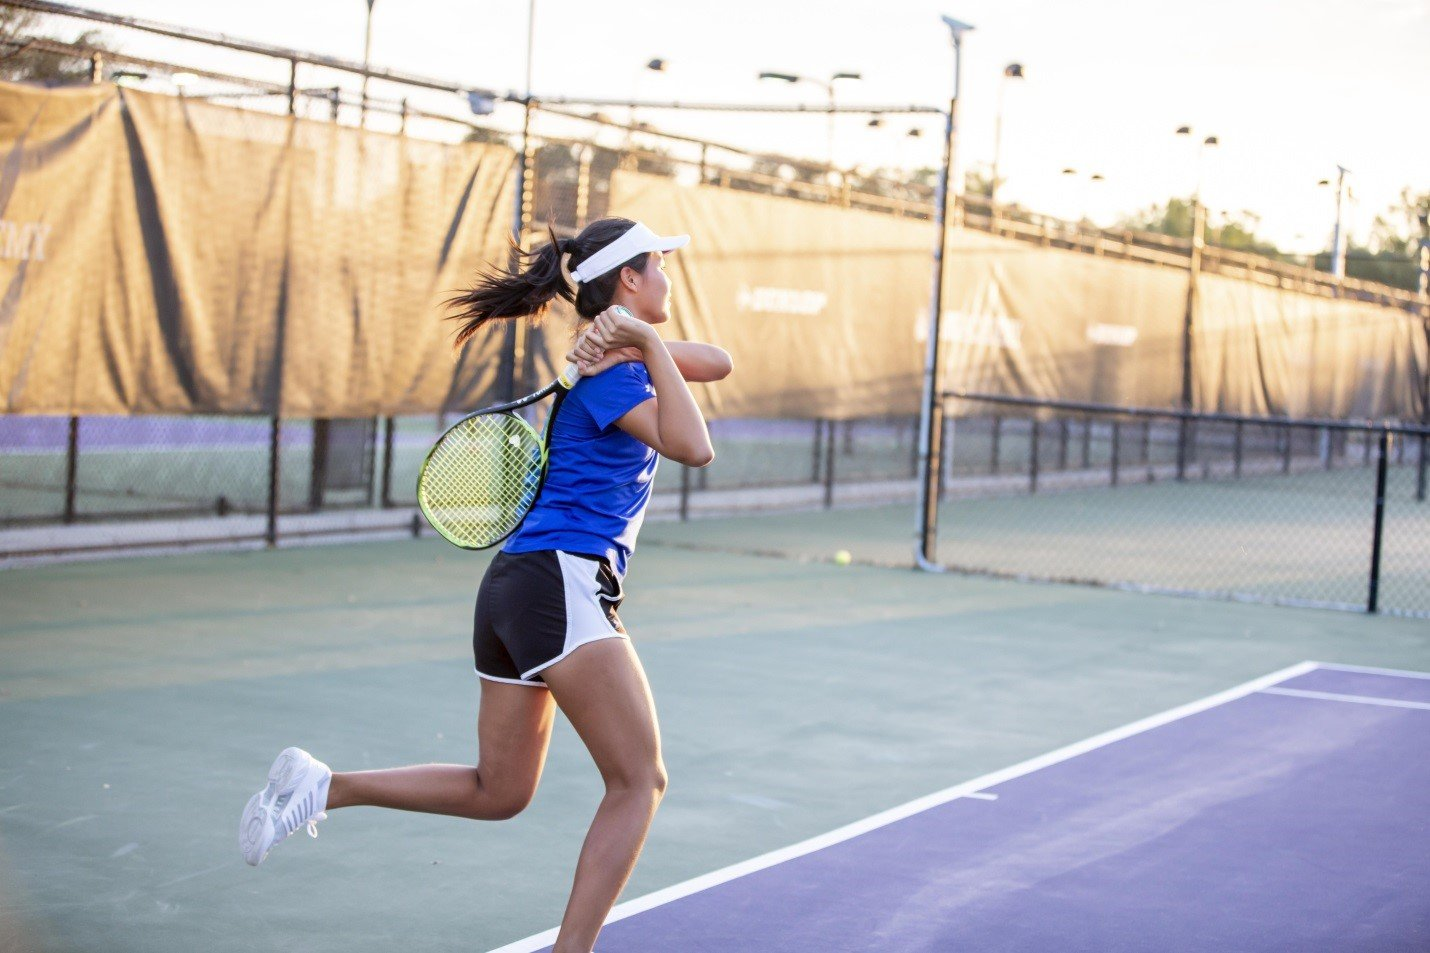 Female IMG Academy Junior Tennis Athlete Taking a Backhand Swing as She Runs Across the Court